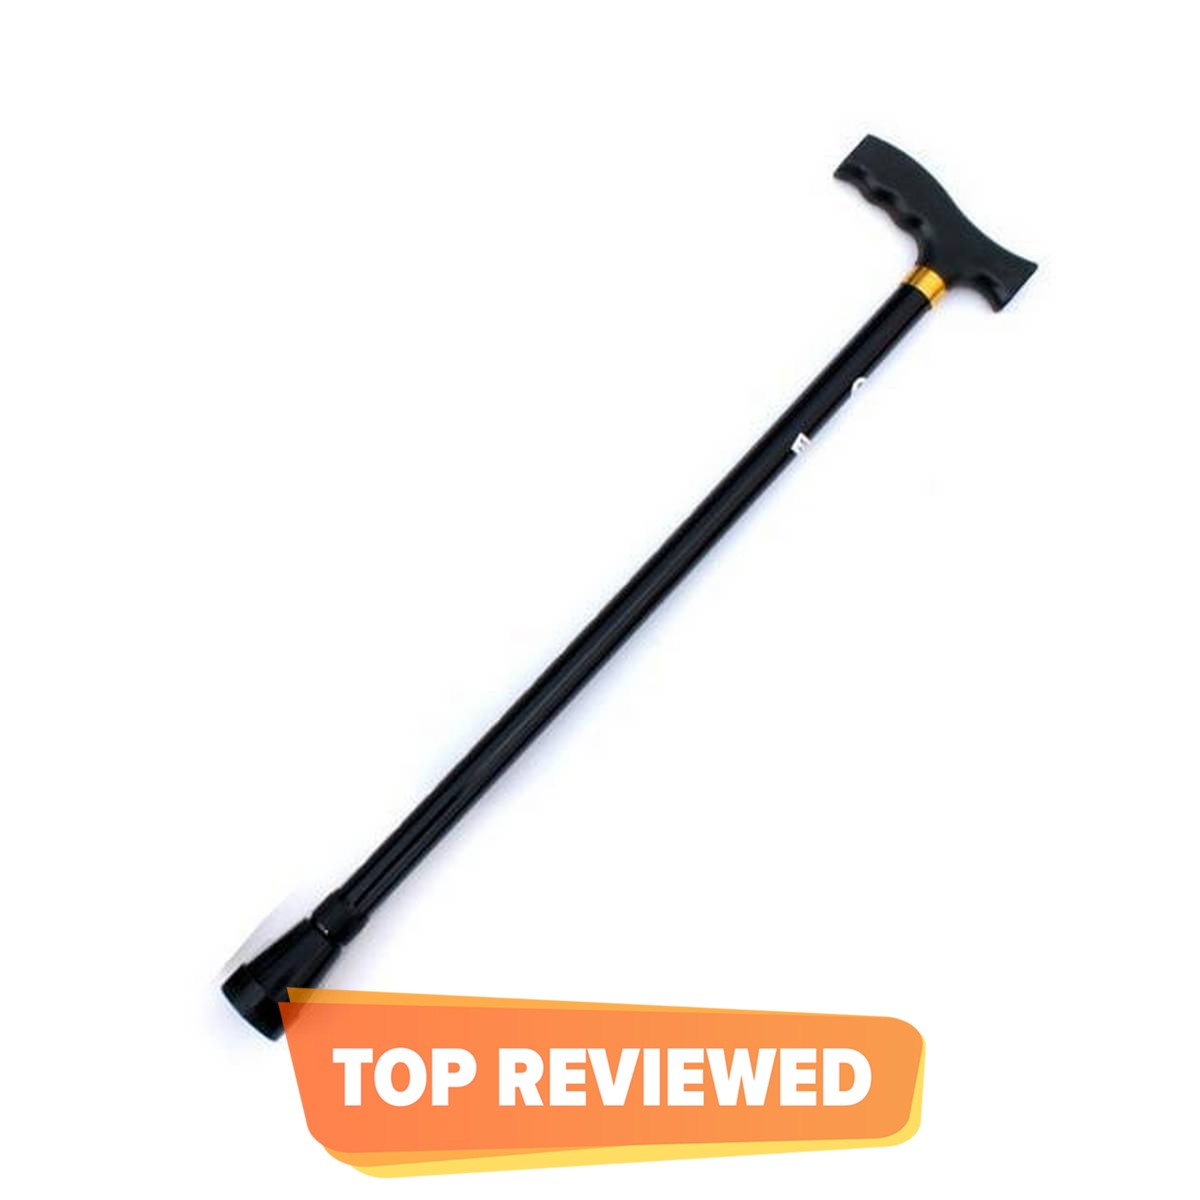 Outdoor thick aluminum telescopic cane adjustable height old man walking stick